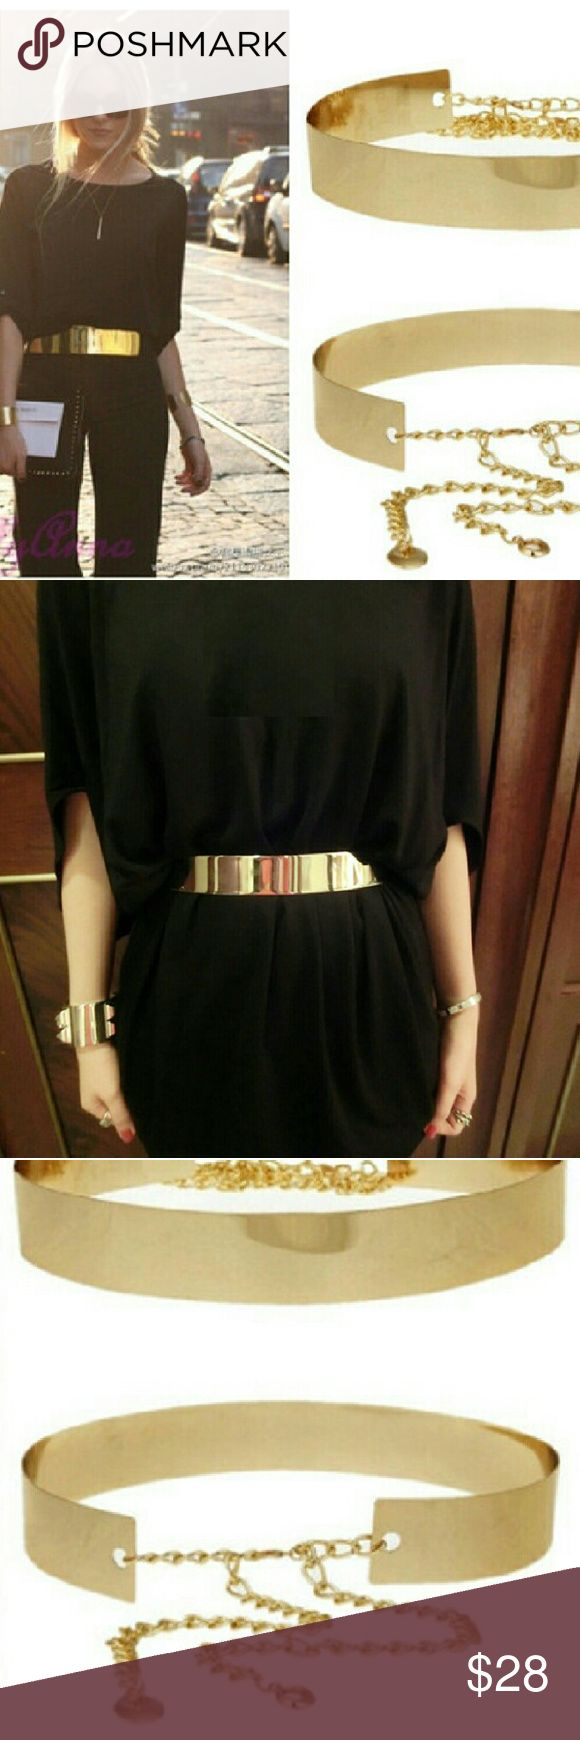 Gold Metal Obi Belt Gold Metal Obi Belt  seen everywhere on tv personalities you too can have this great look! Accessories Belts